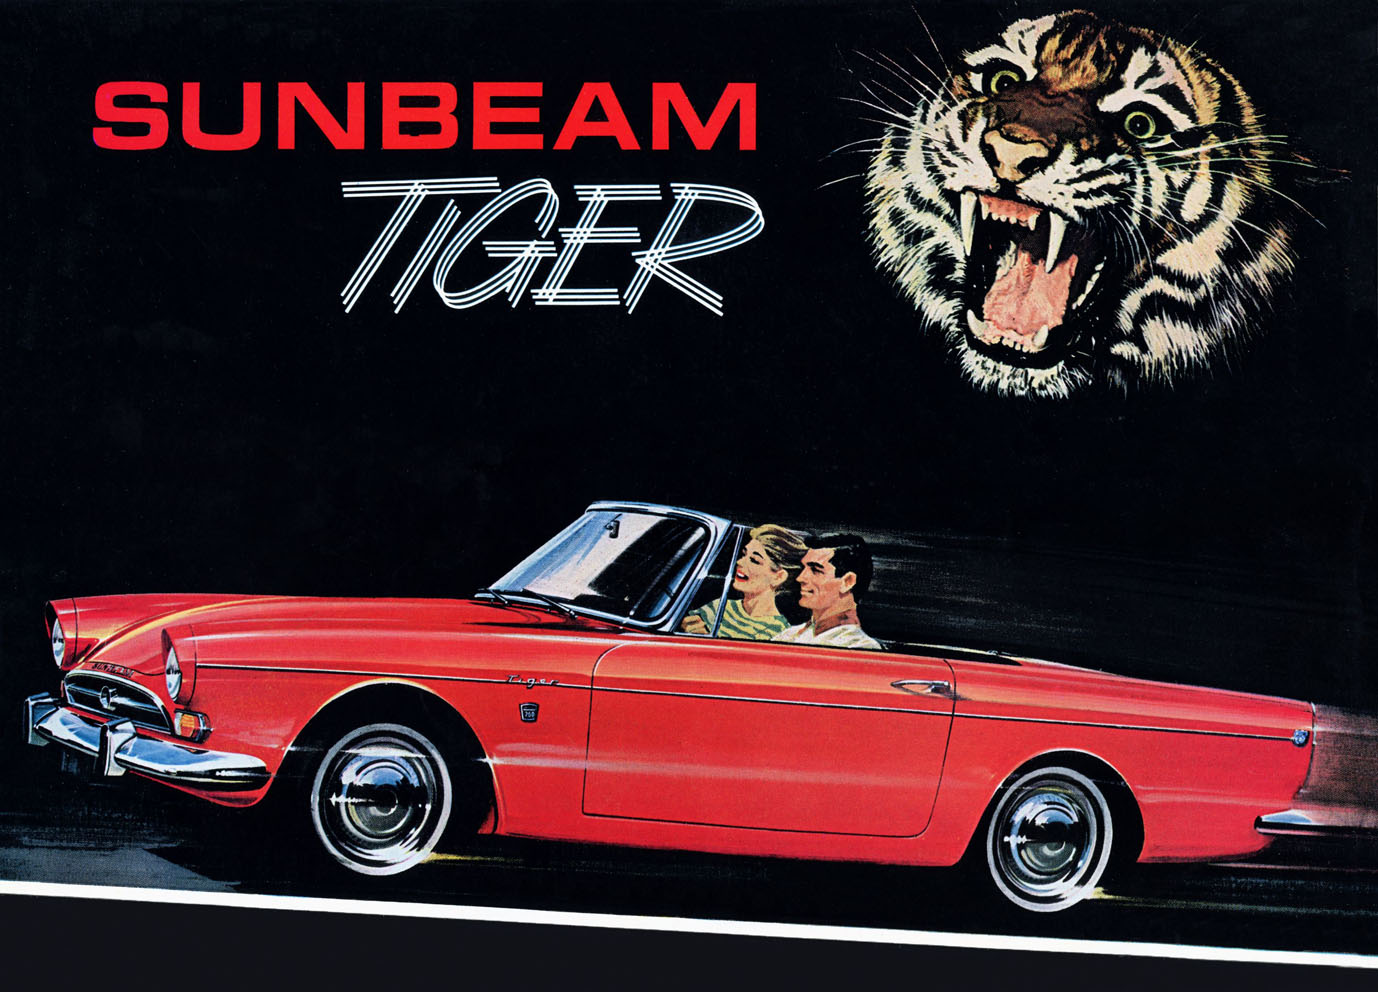 TunnelRam_Sunbeam_Tiger (9).jpg